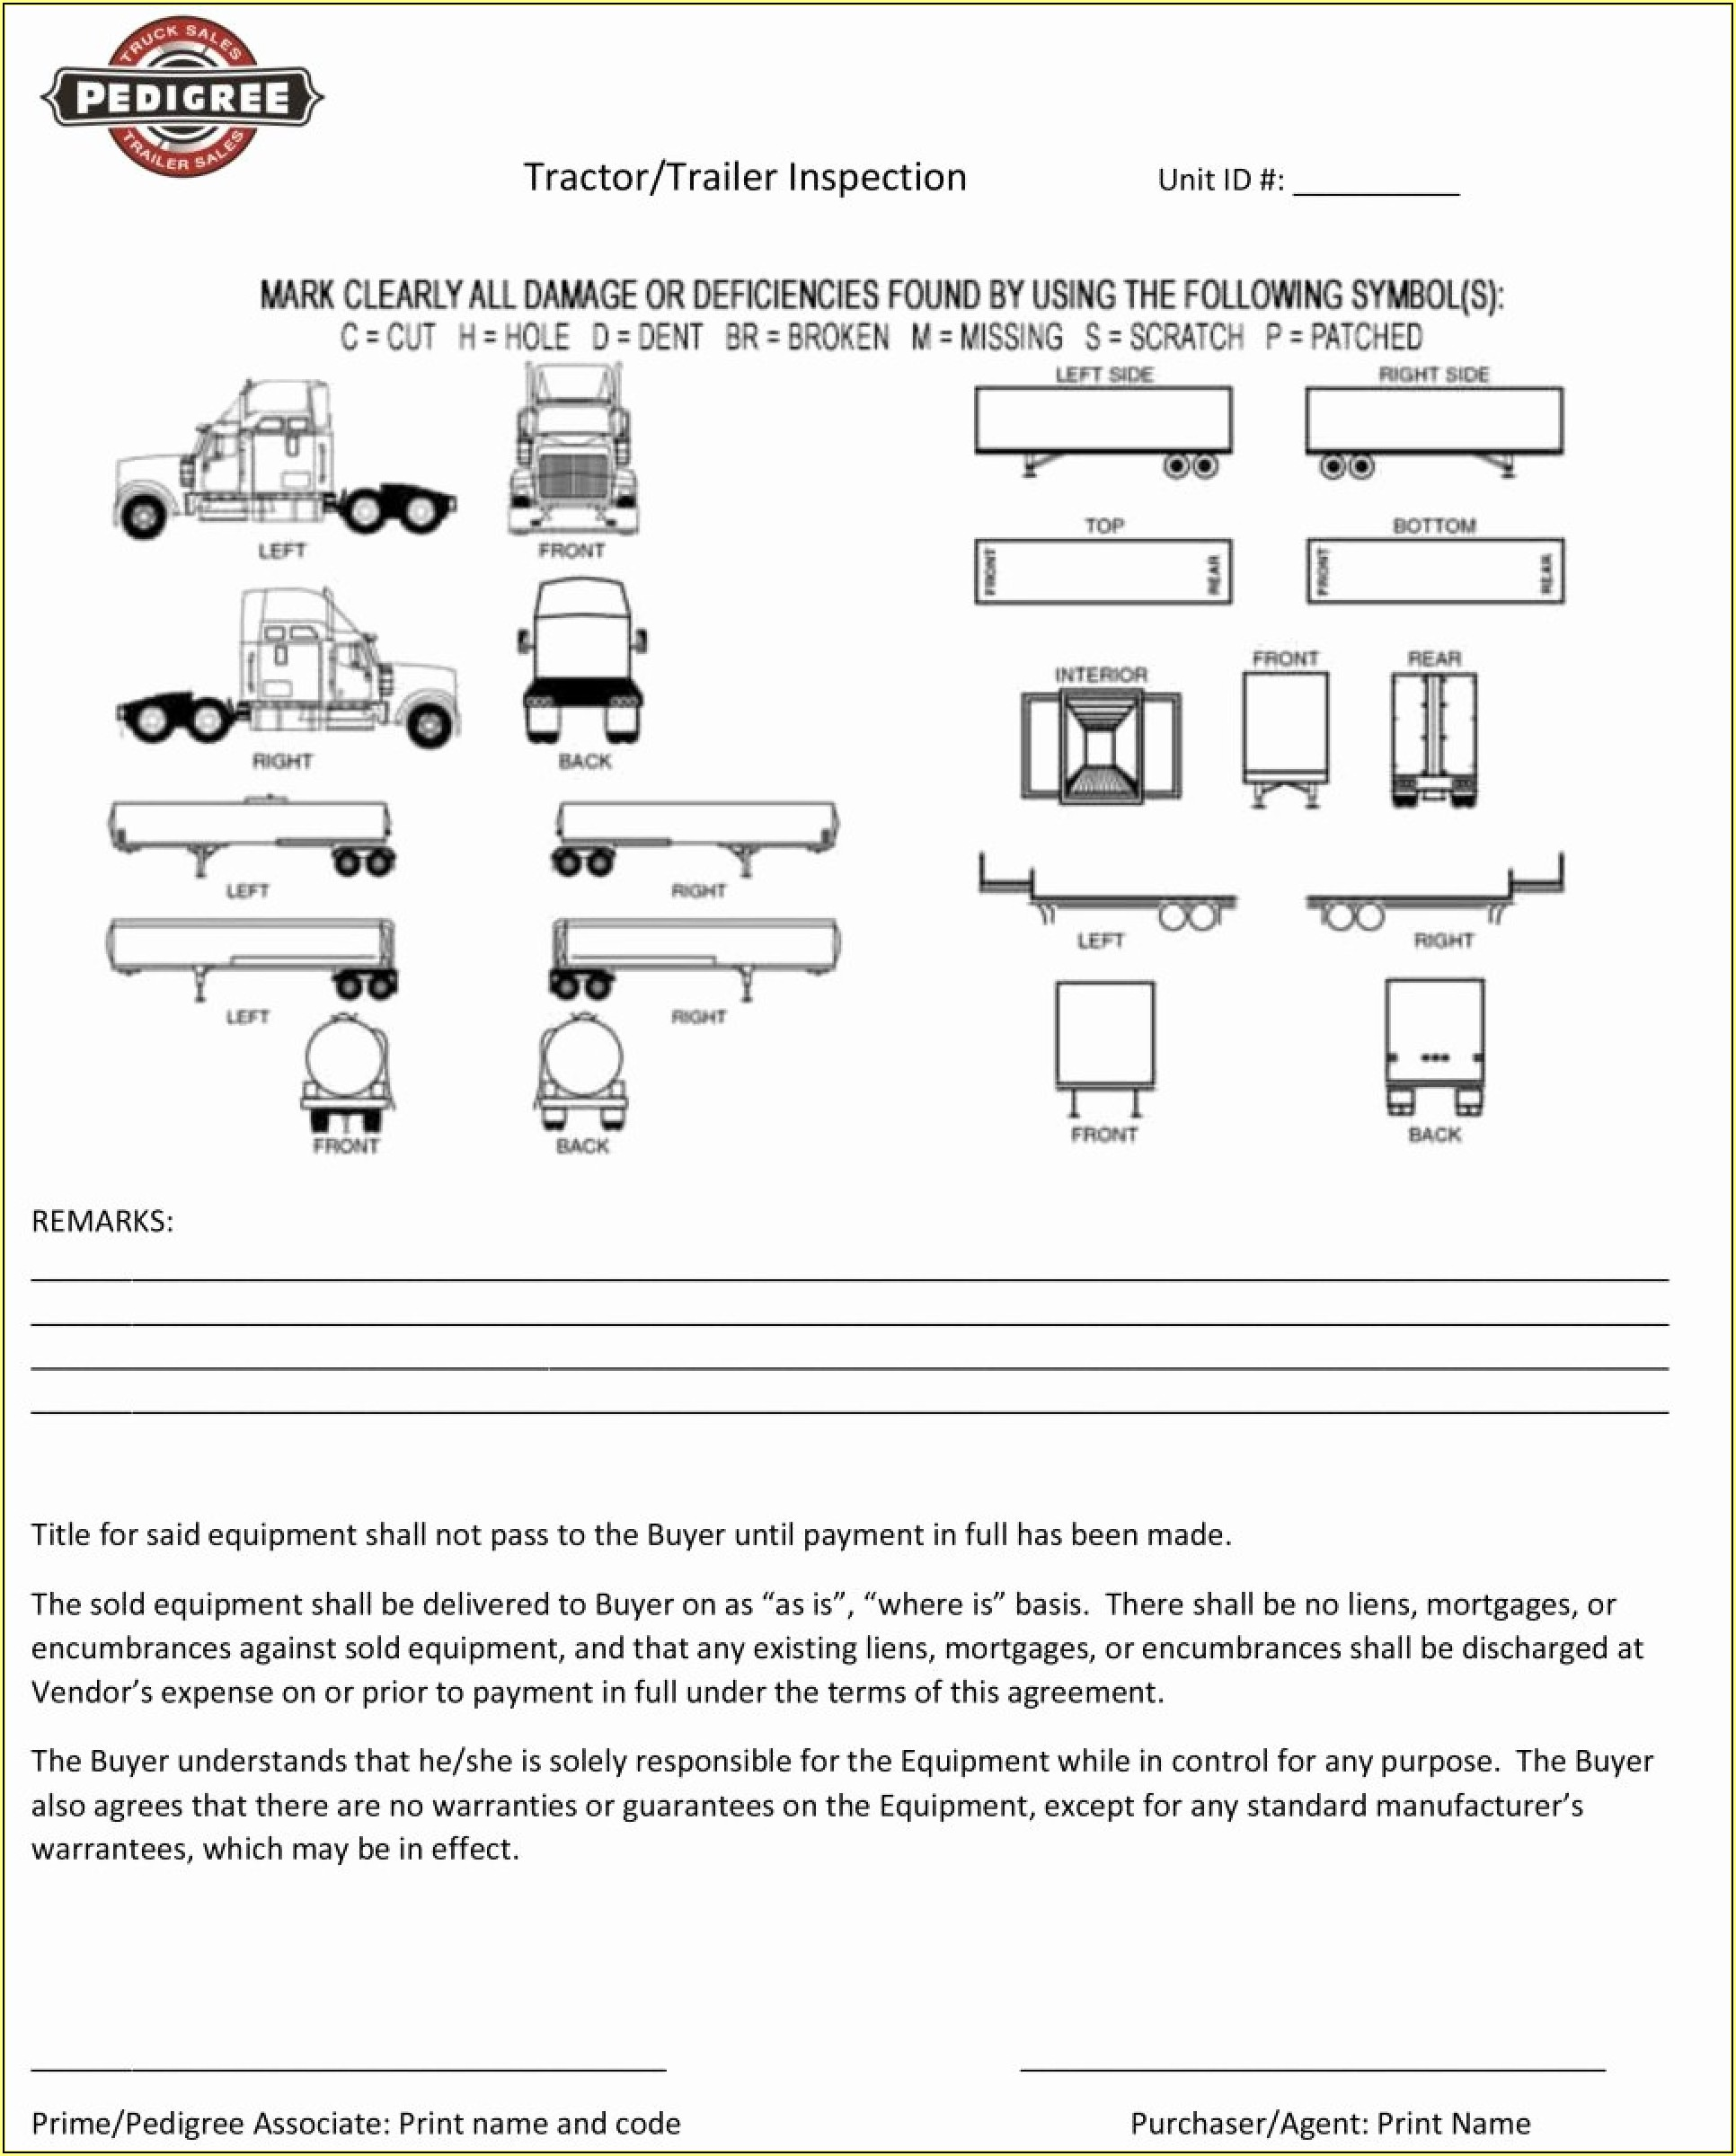 Tractor Trailer Damage Inspection Form